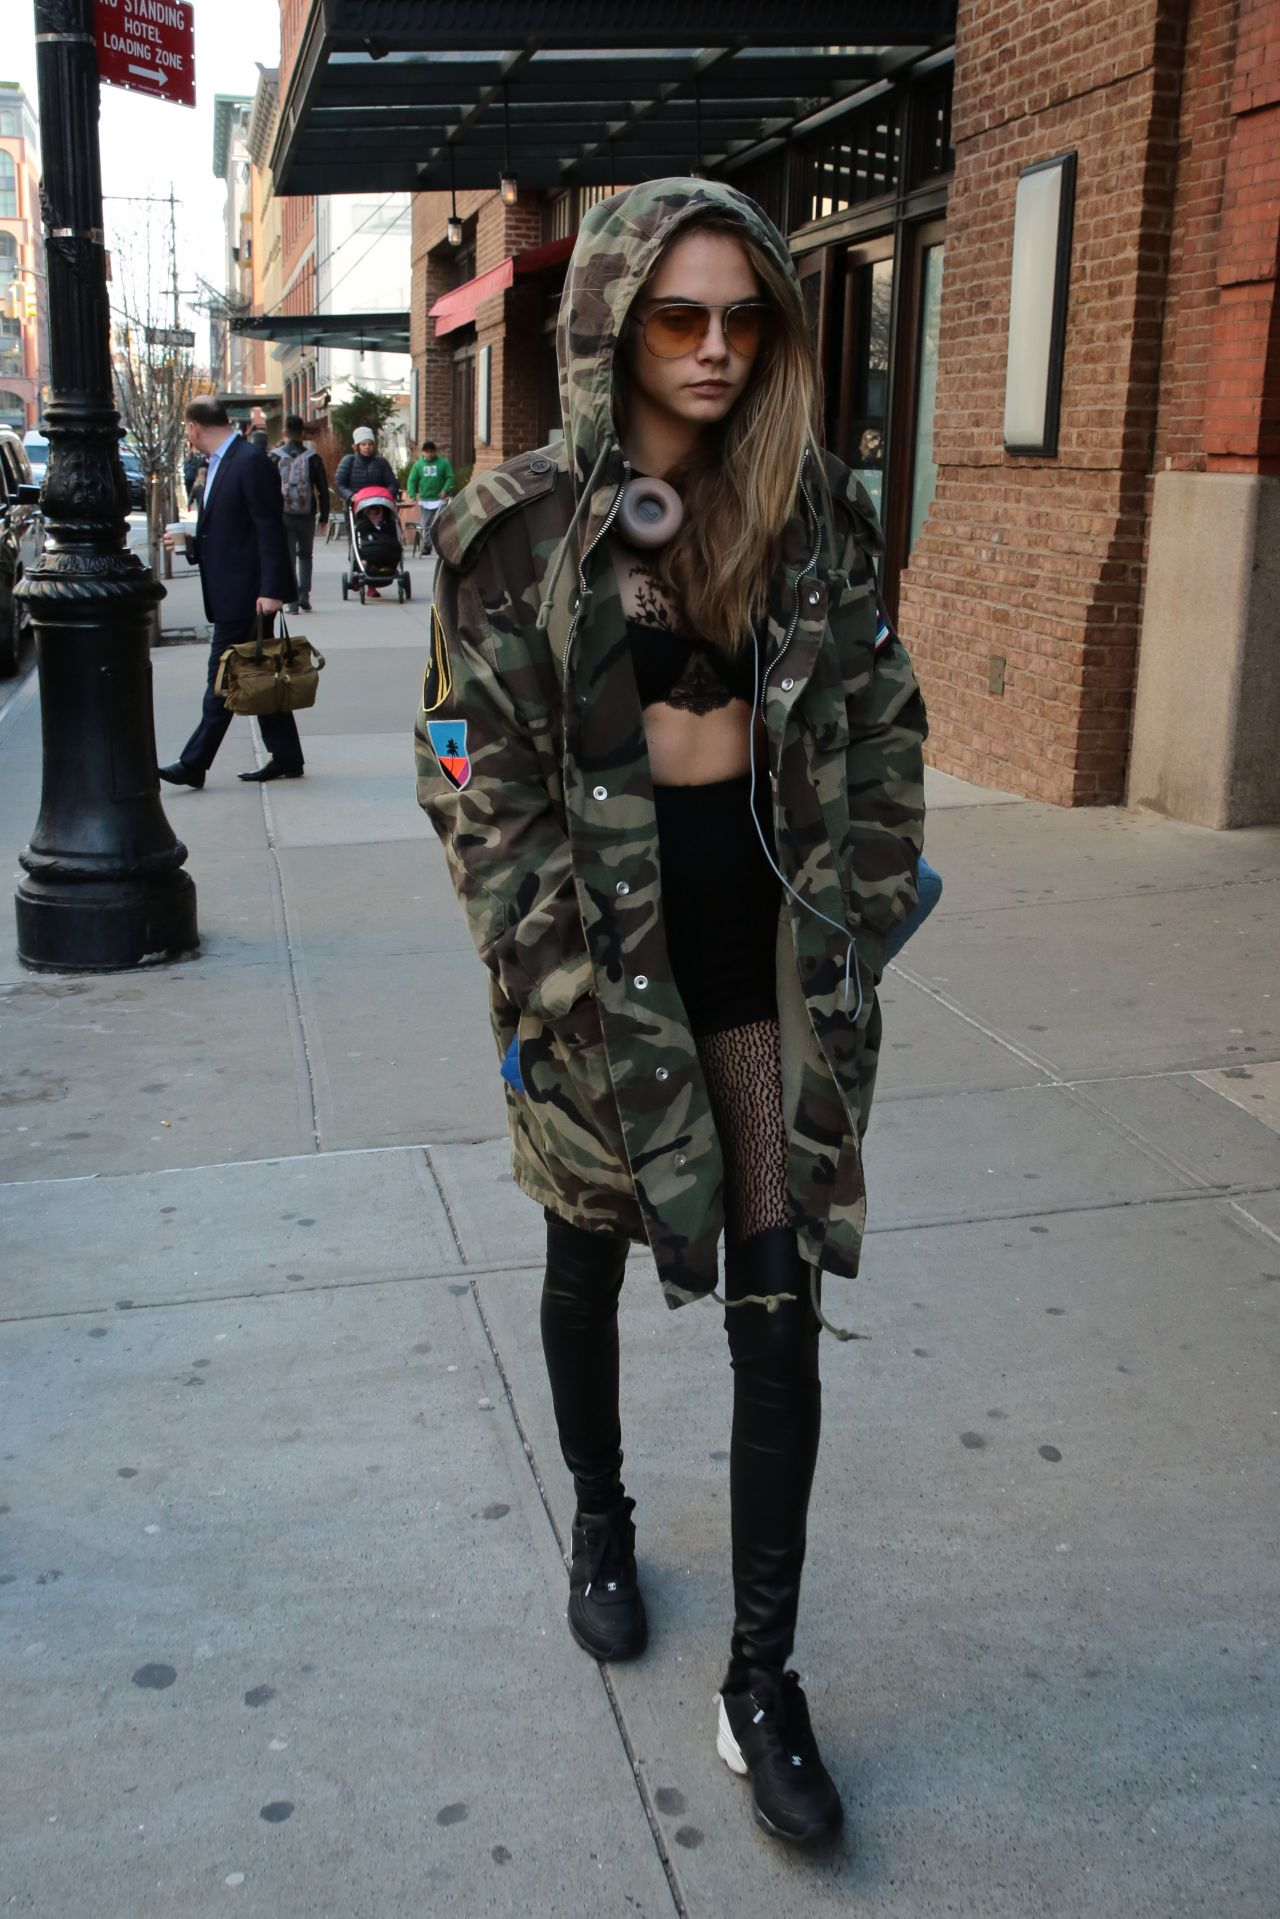 cara-delevingne-style-out-in-new-york-city-ny-3-24-2016-2